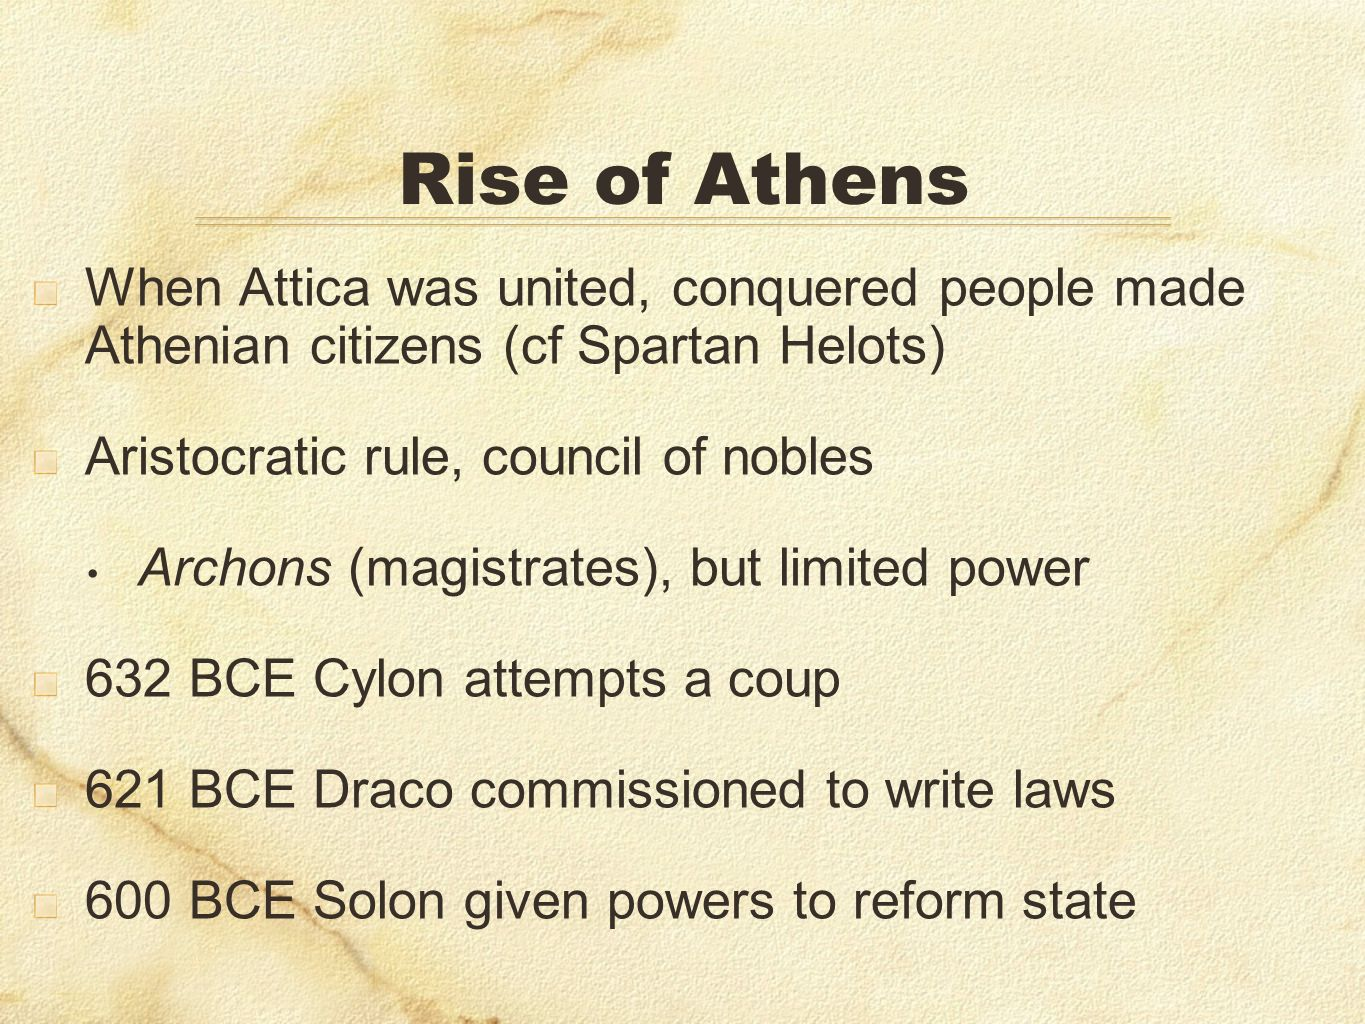 Rise of Athens When Attica was united, conquered people made Athenian citizens (cf Spartan Helots)